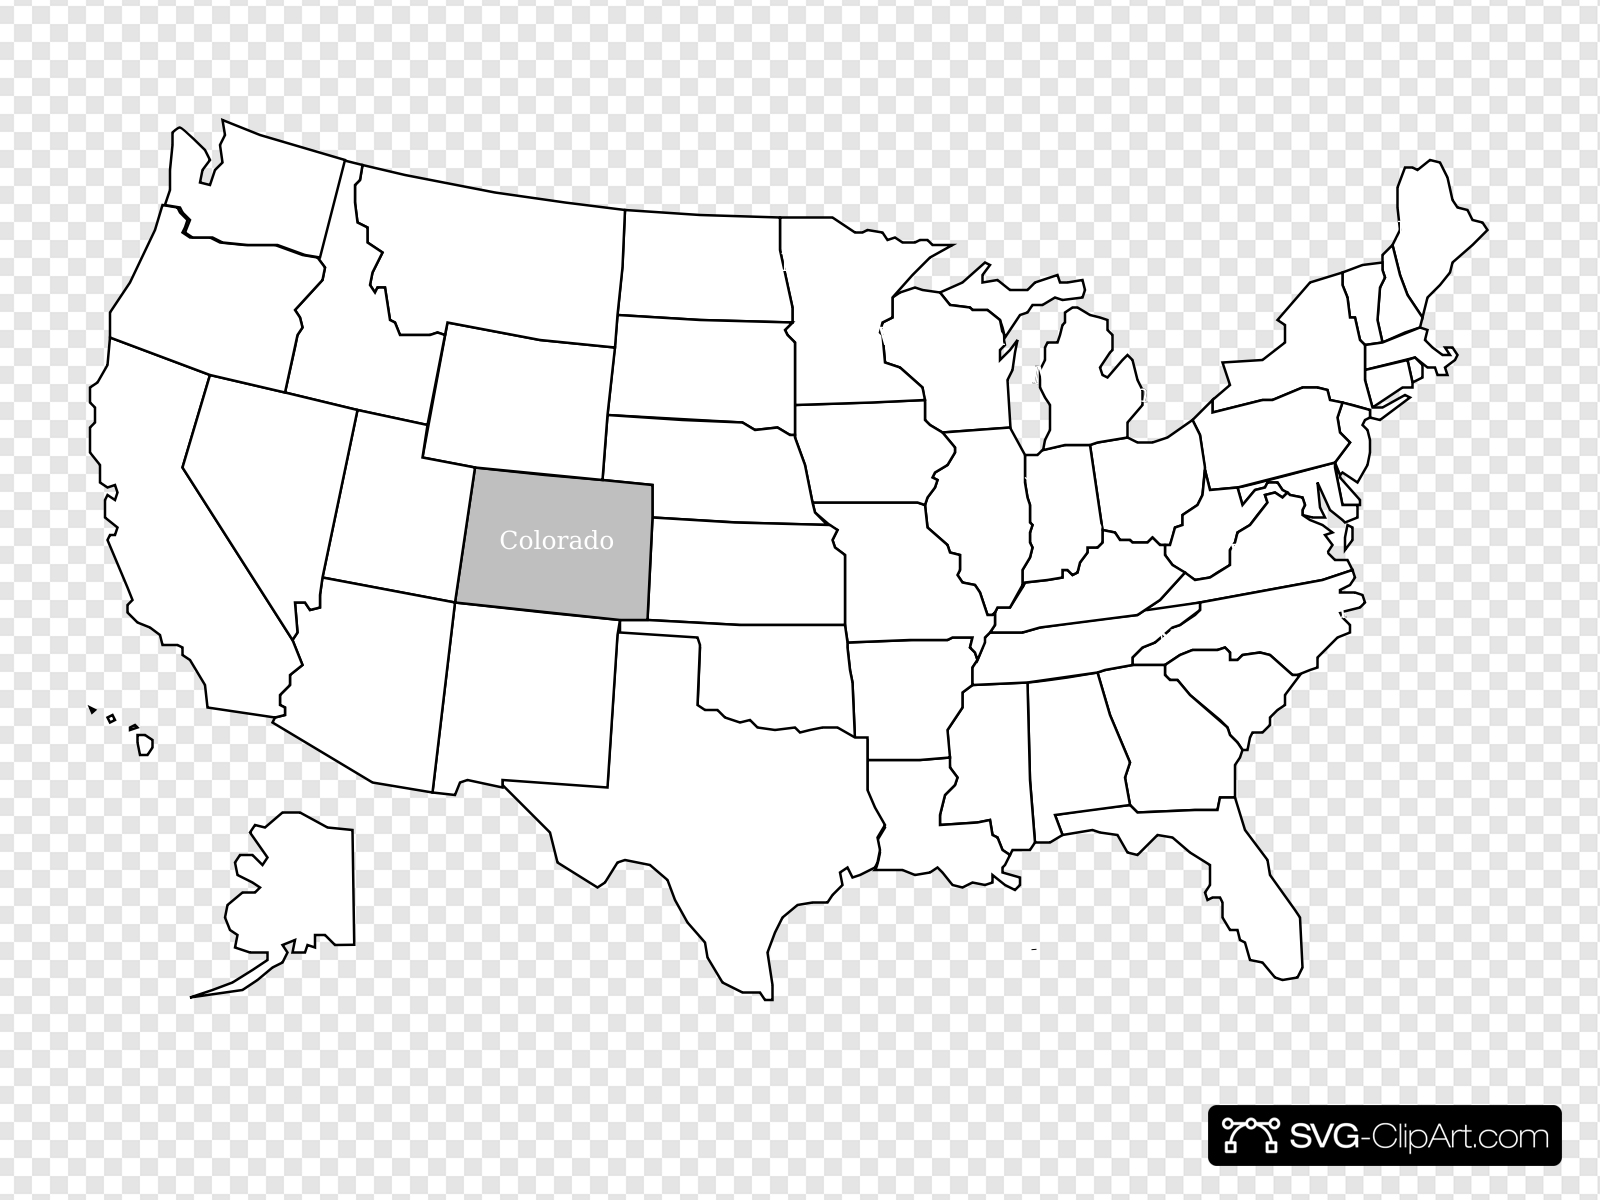 United States Map With Colorado Highlighted Clip art, Icon.